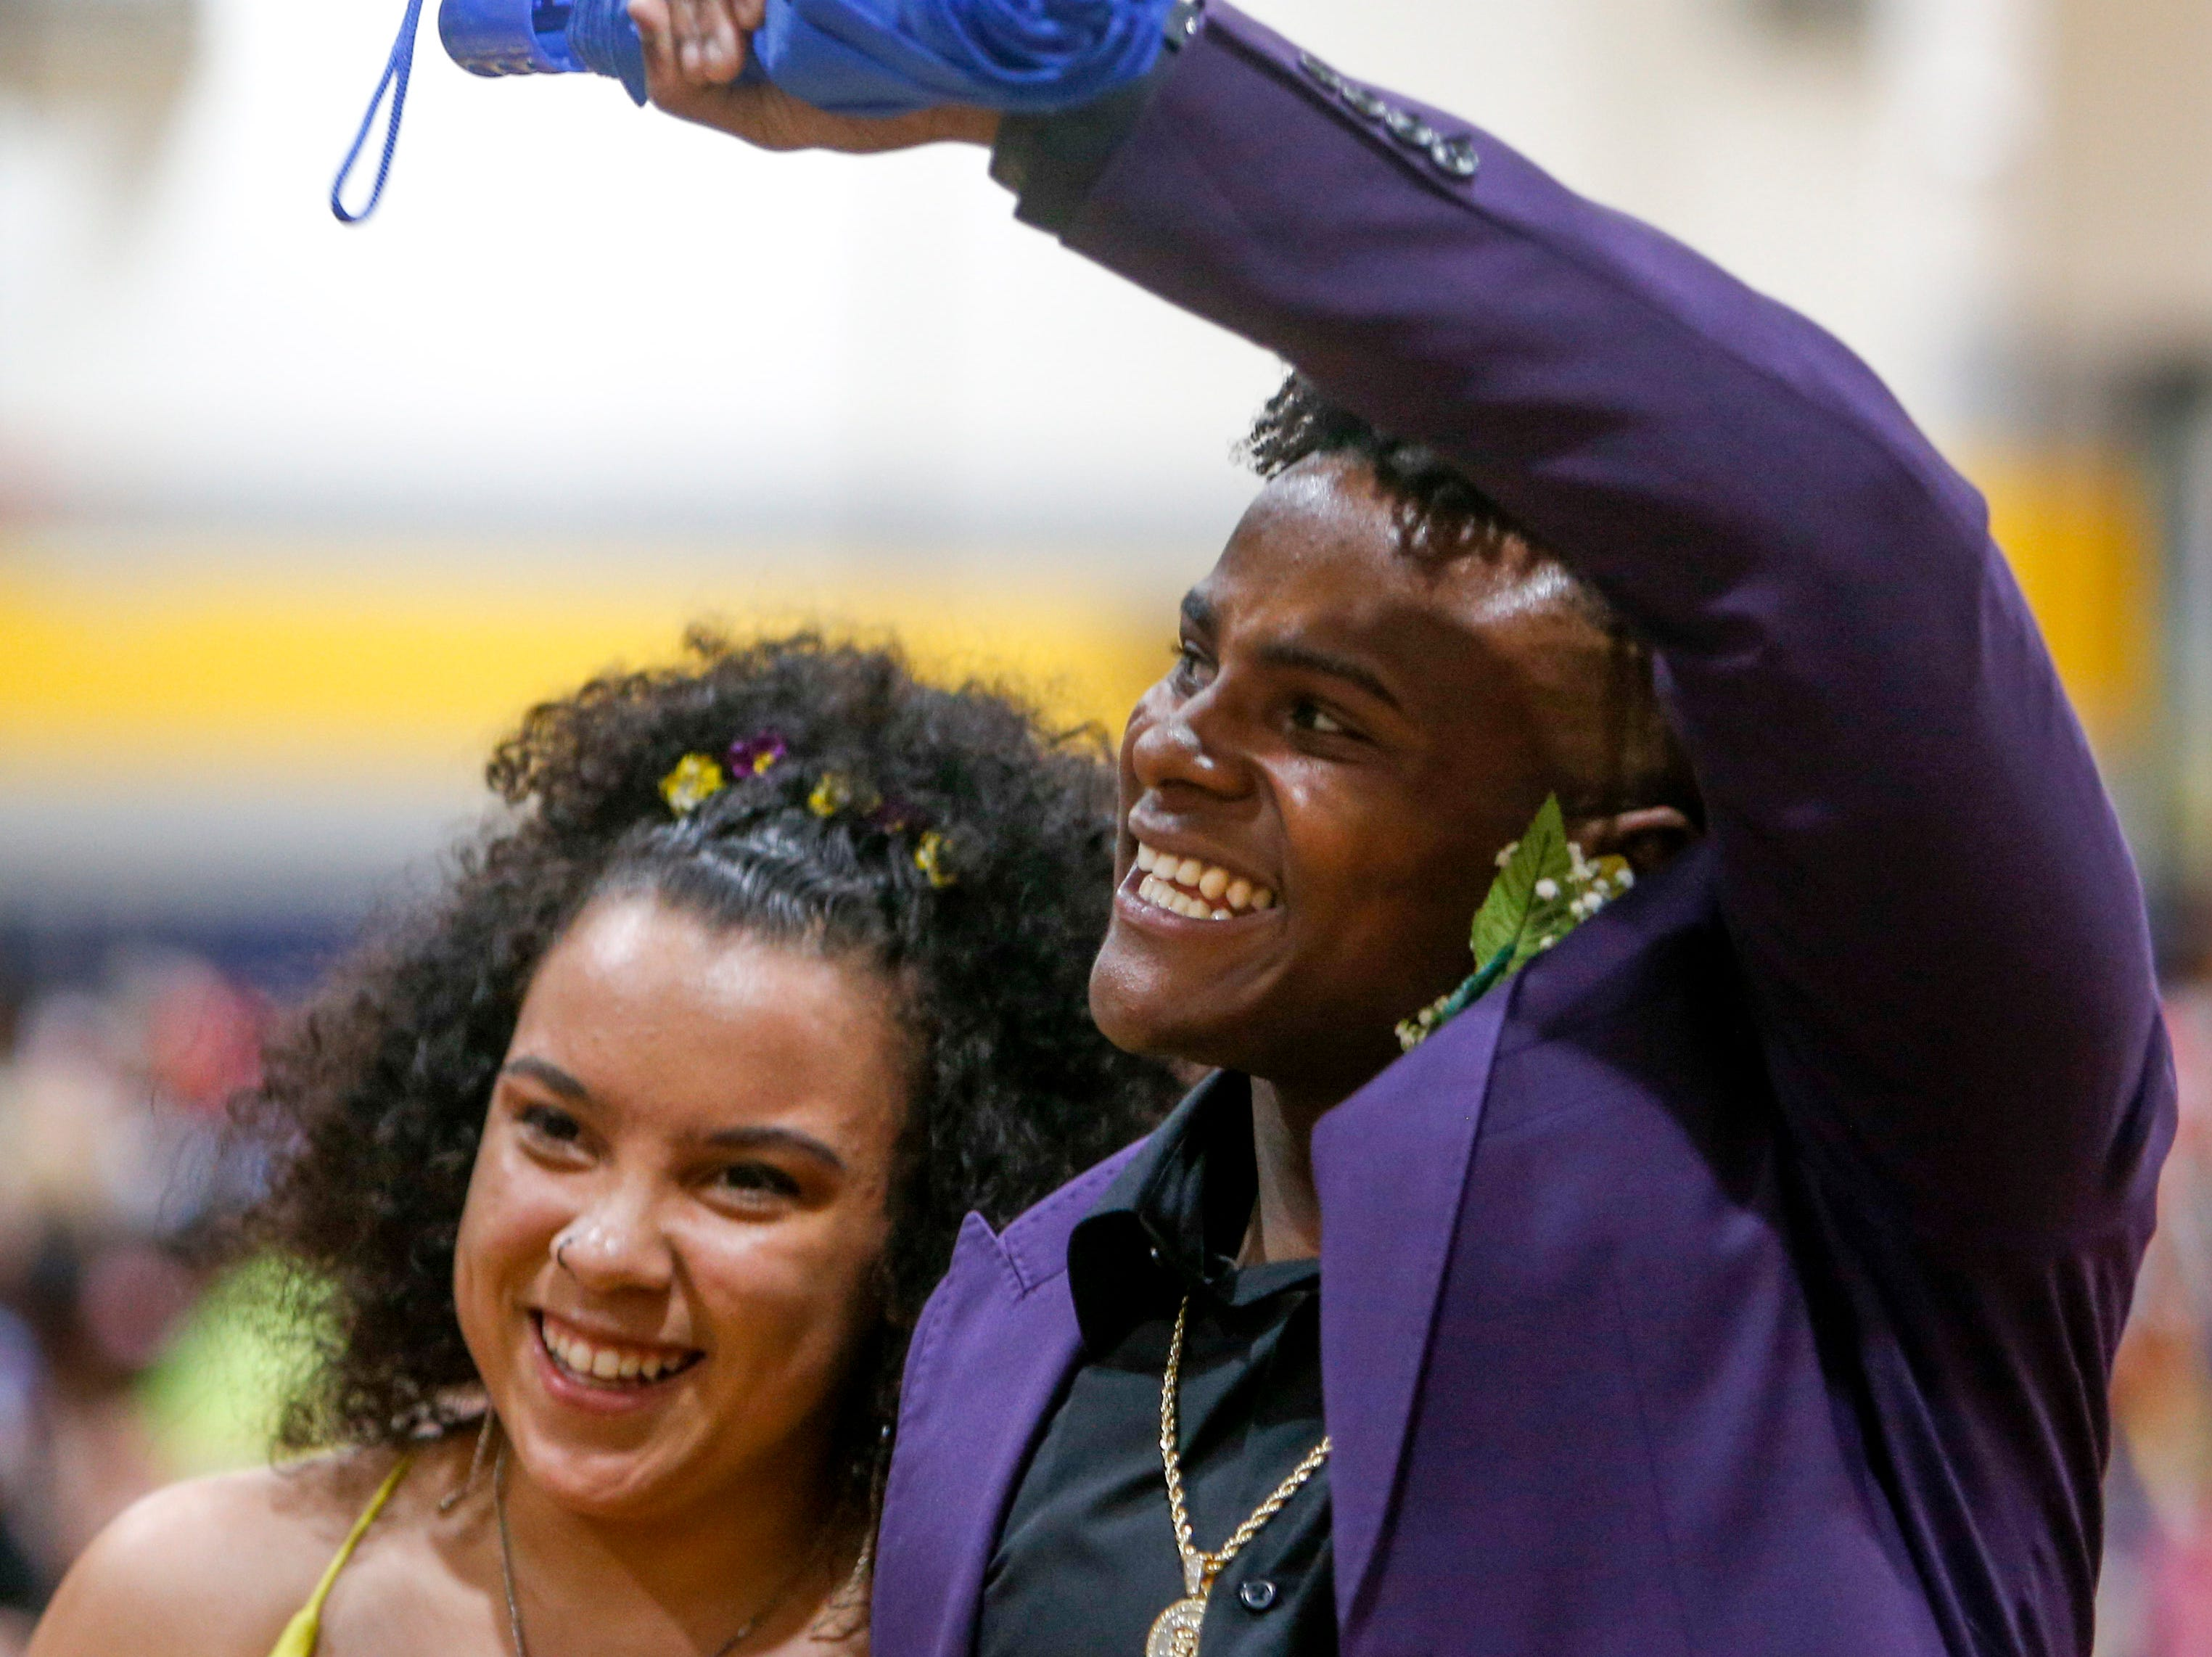 Hundreds of students from Northeast braved the foul weather and walked a red carpet on their way to busses that will take them to Opryland for their 2019 prom at Northeast High School in Clarksville, Tenn., on Saturday, May 4, 2019.